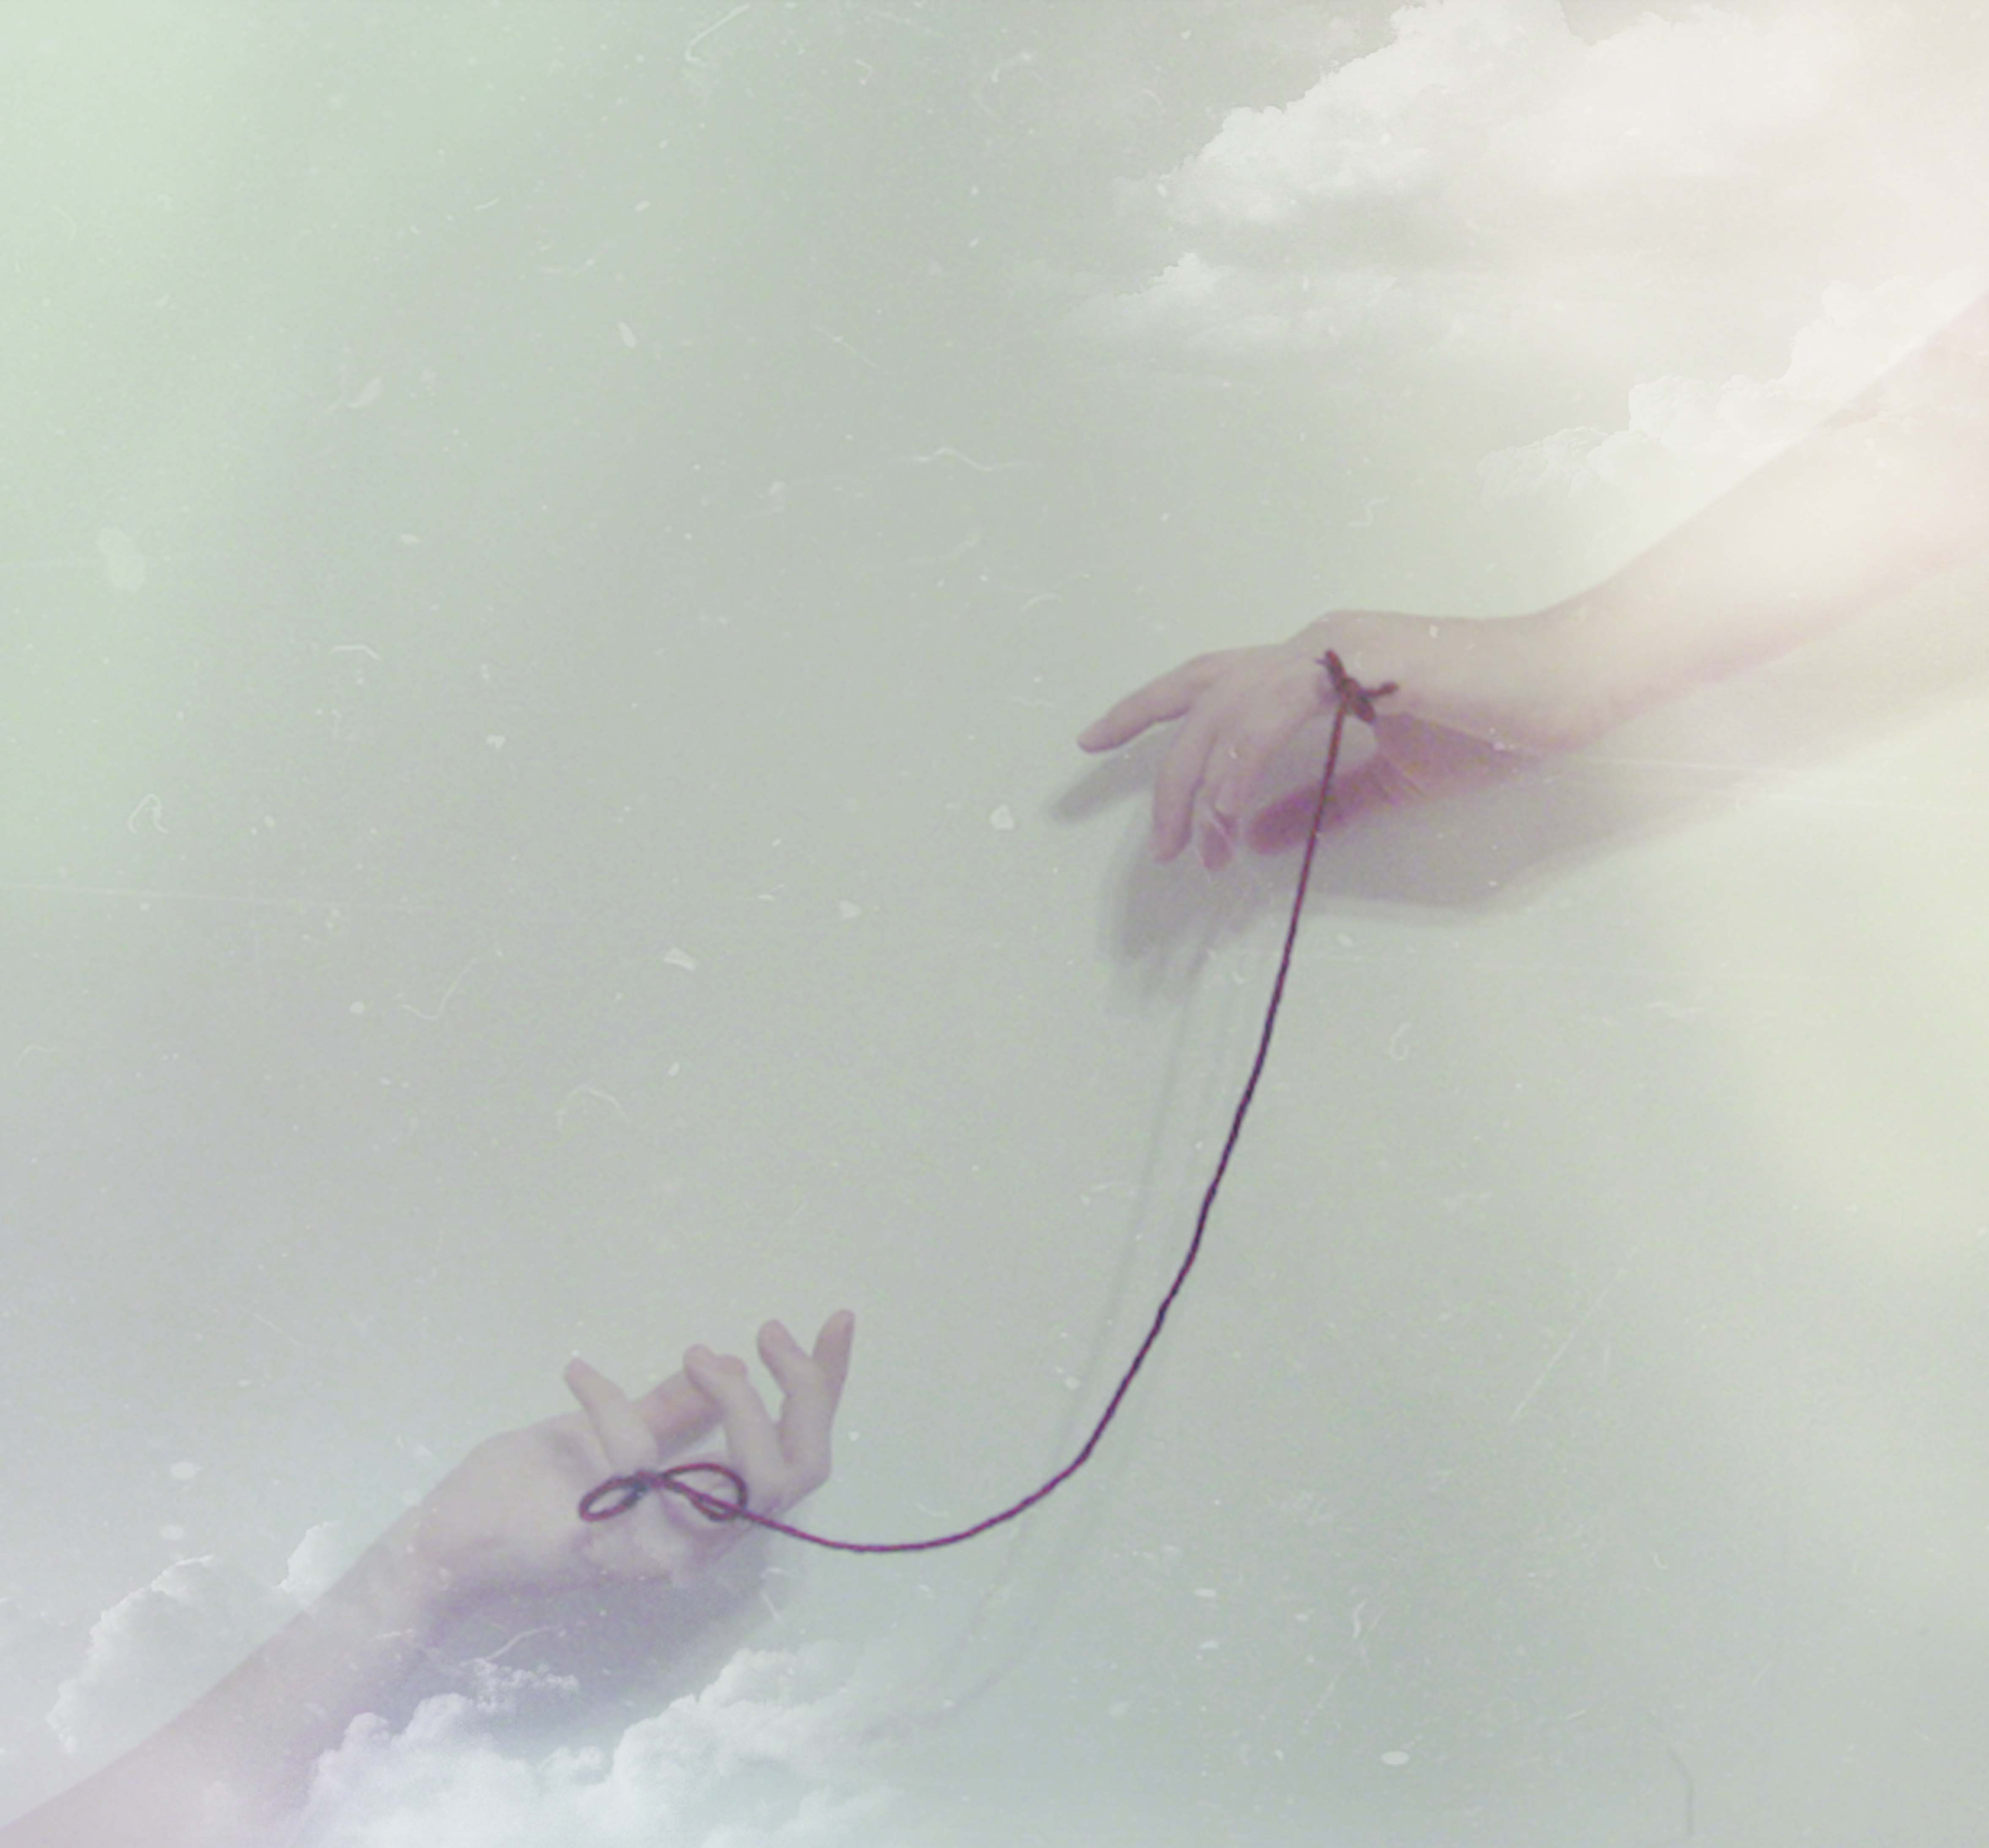 Red String of Fate by nile-can-too